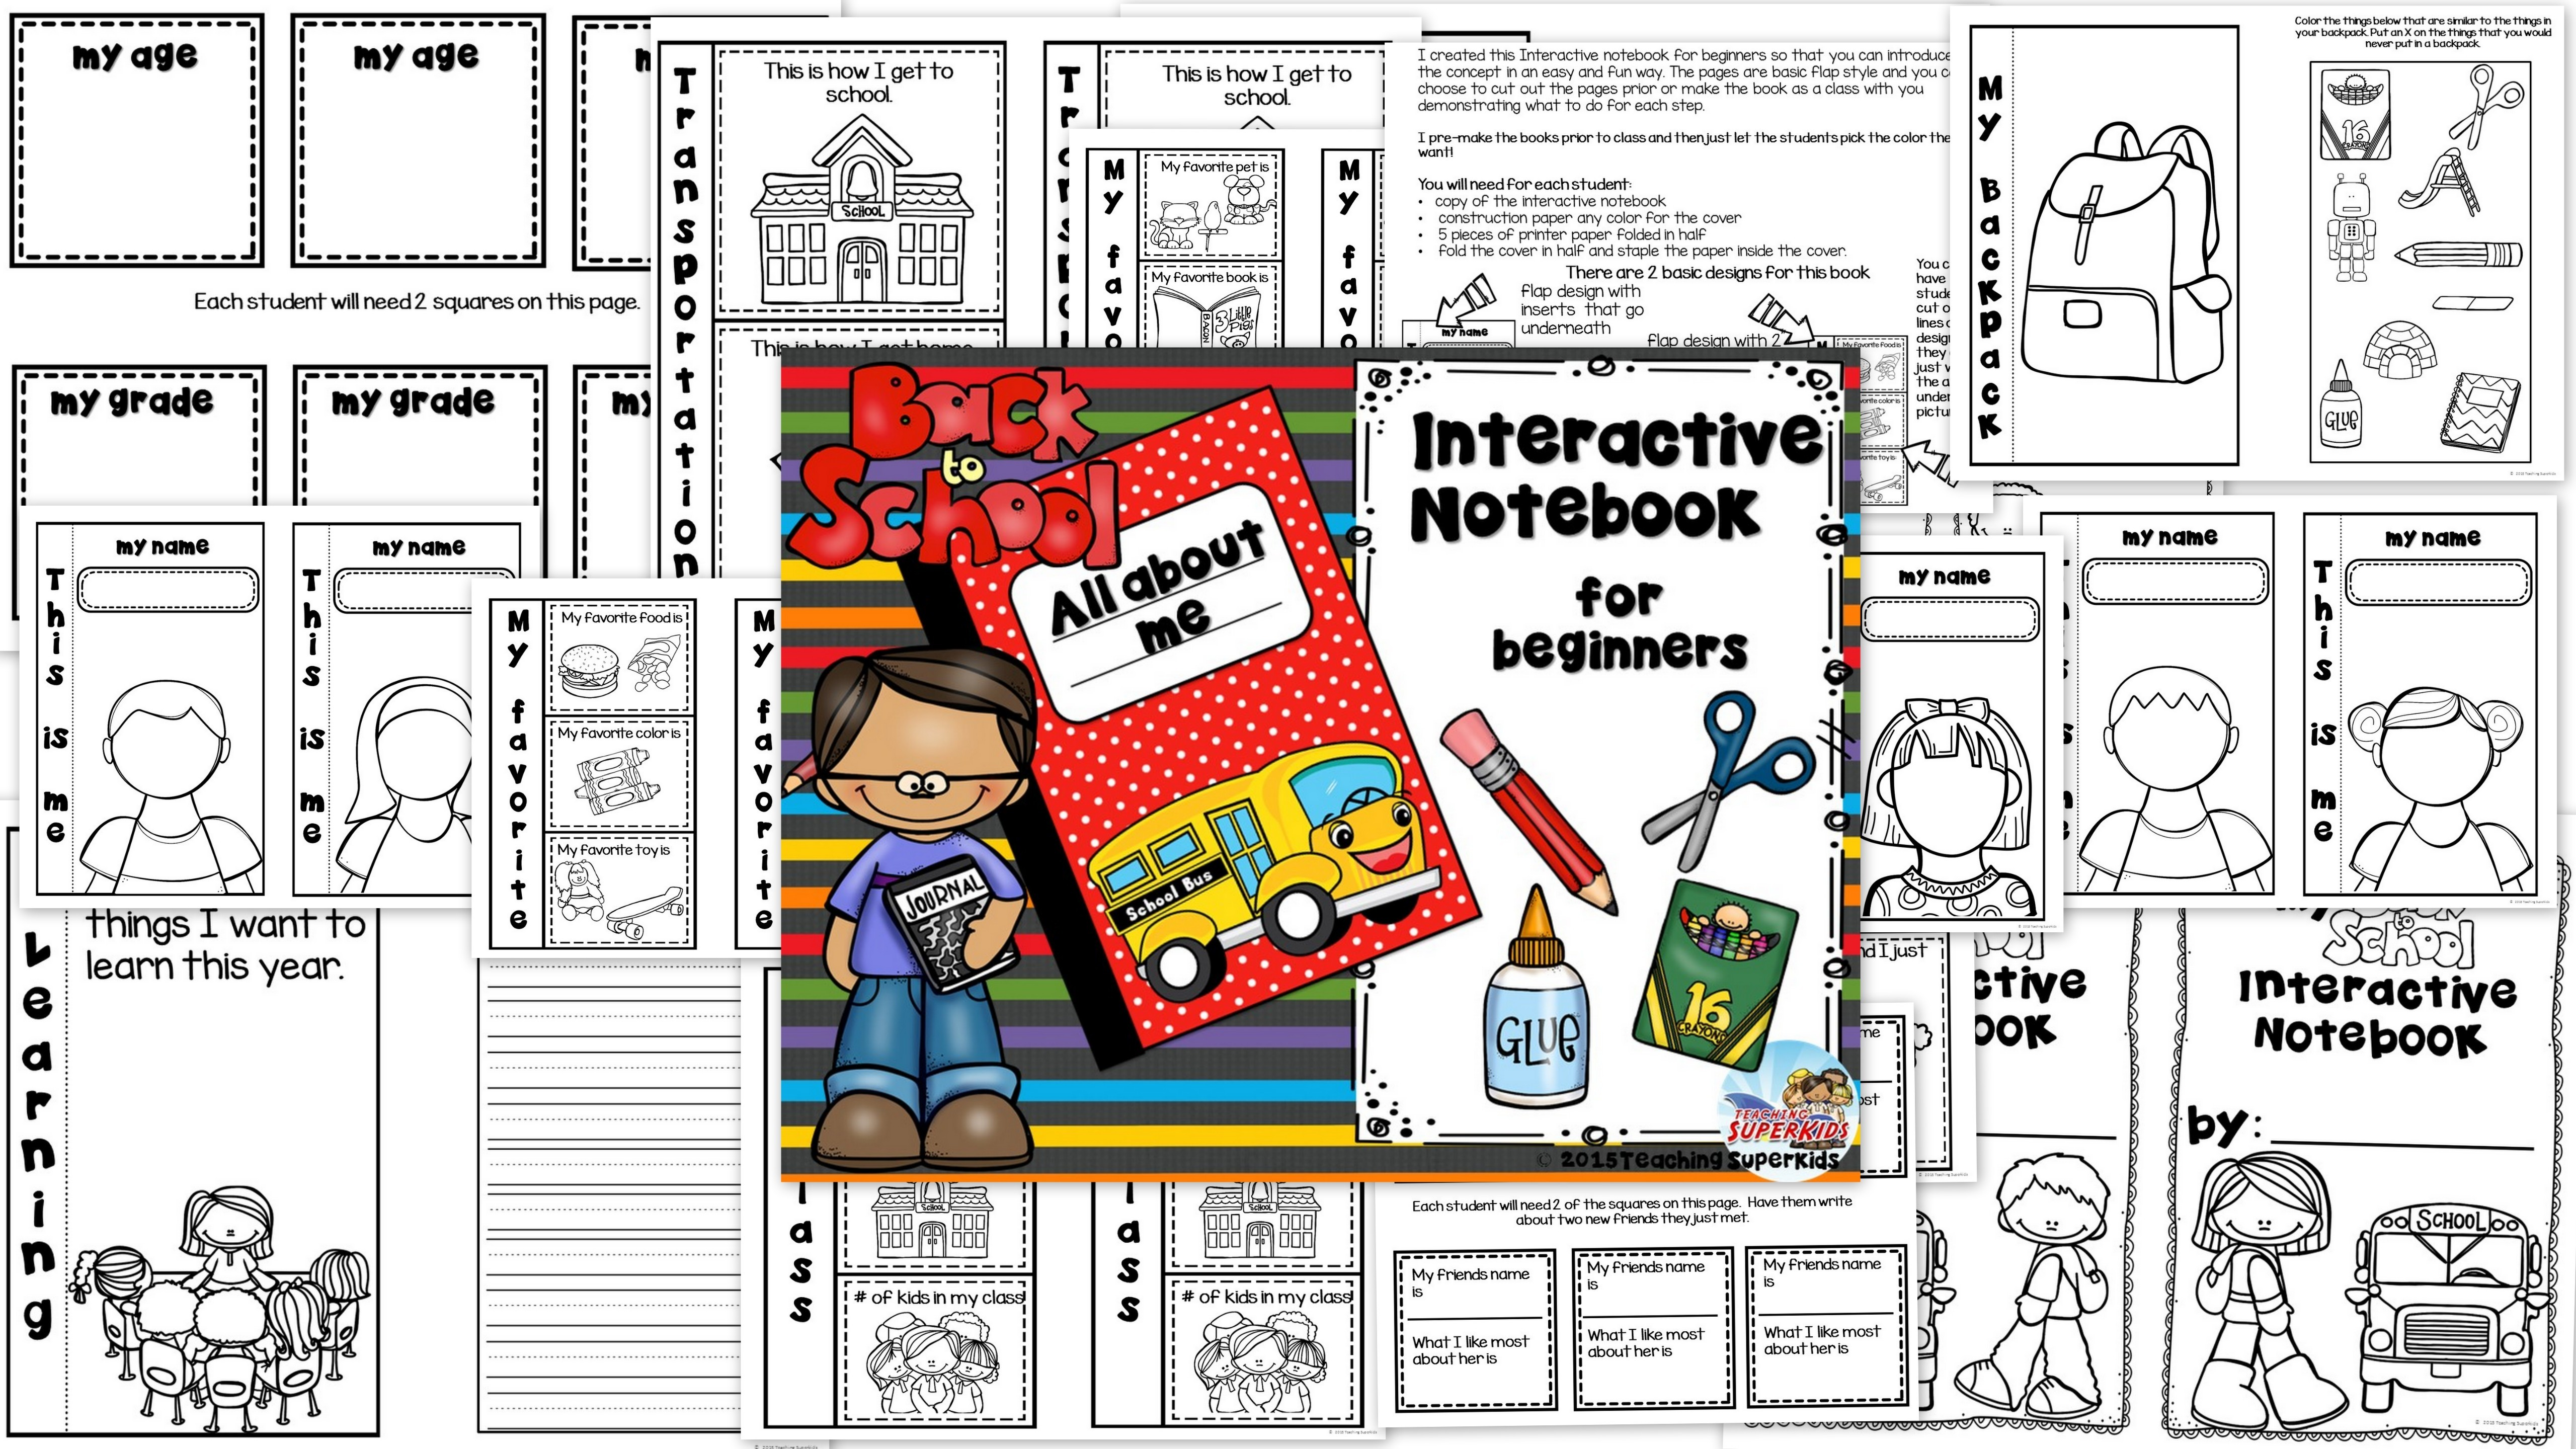 Back to School Interactive Notebook for Beginners